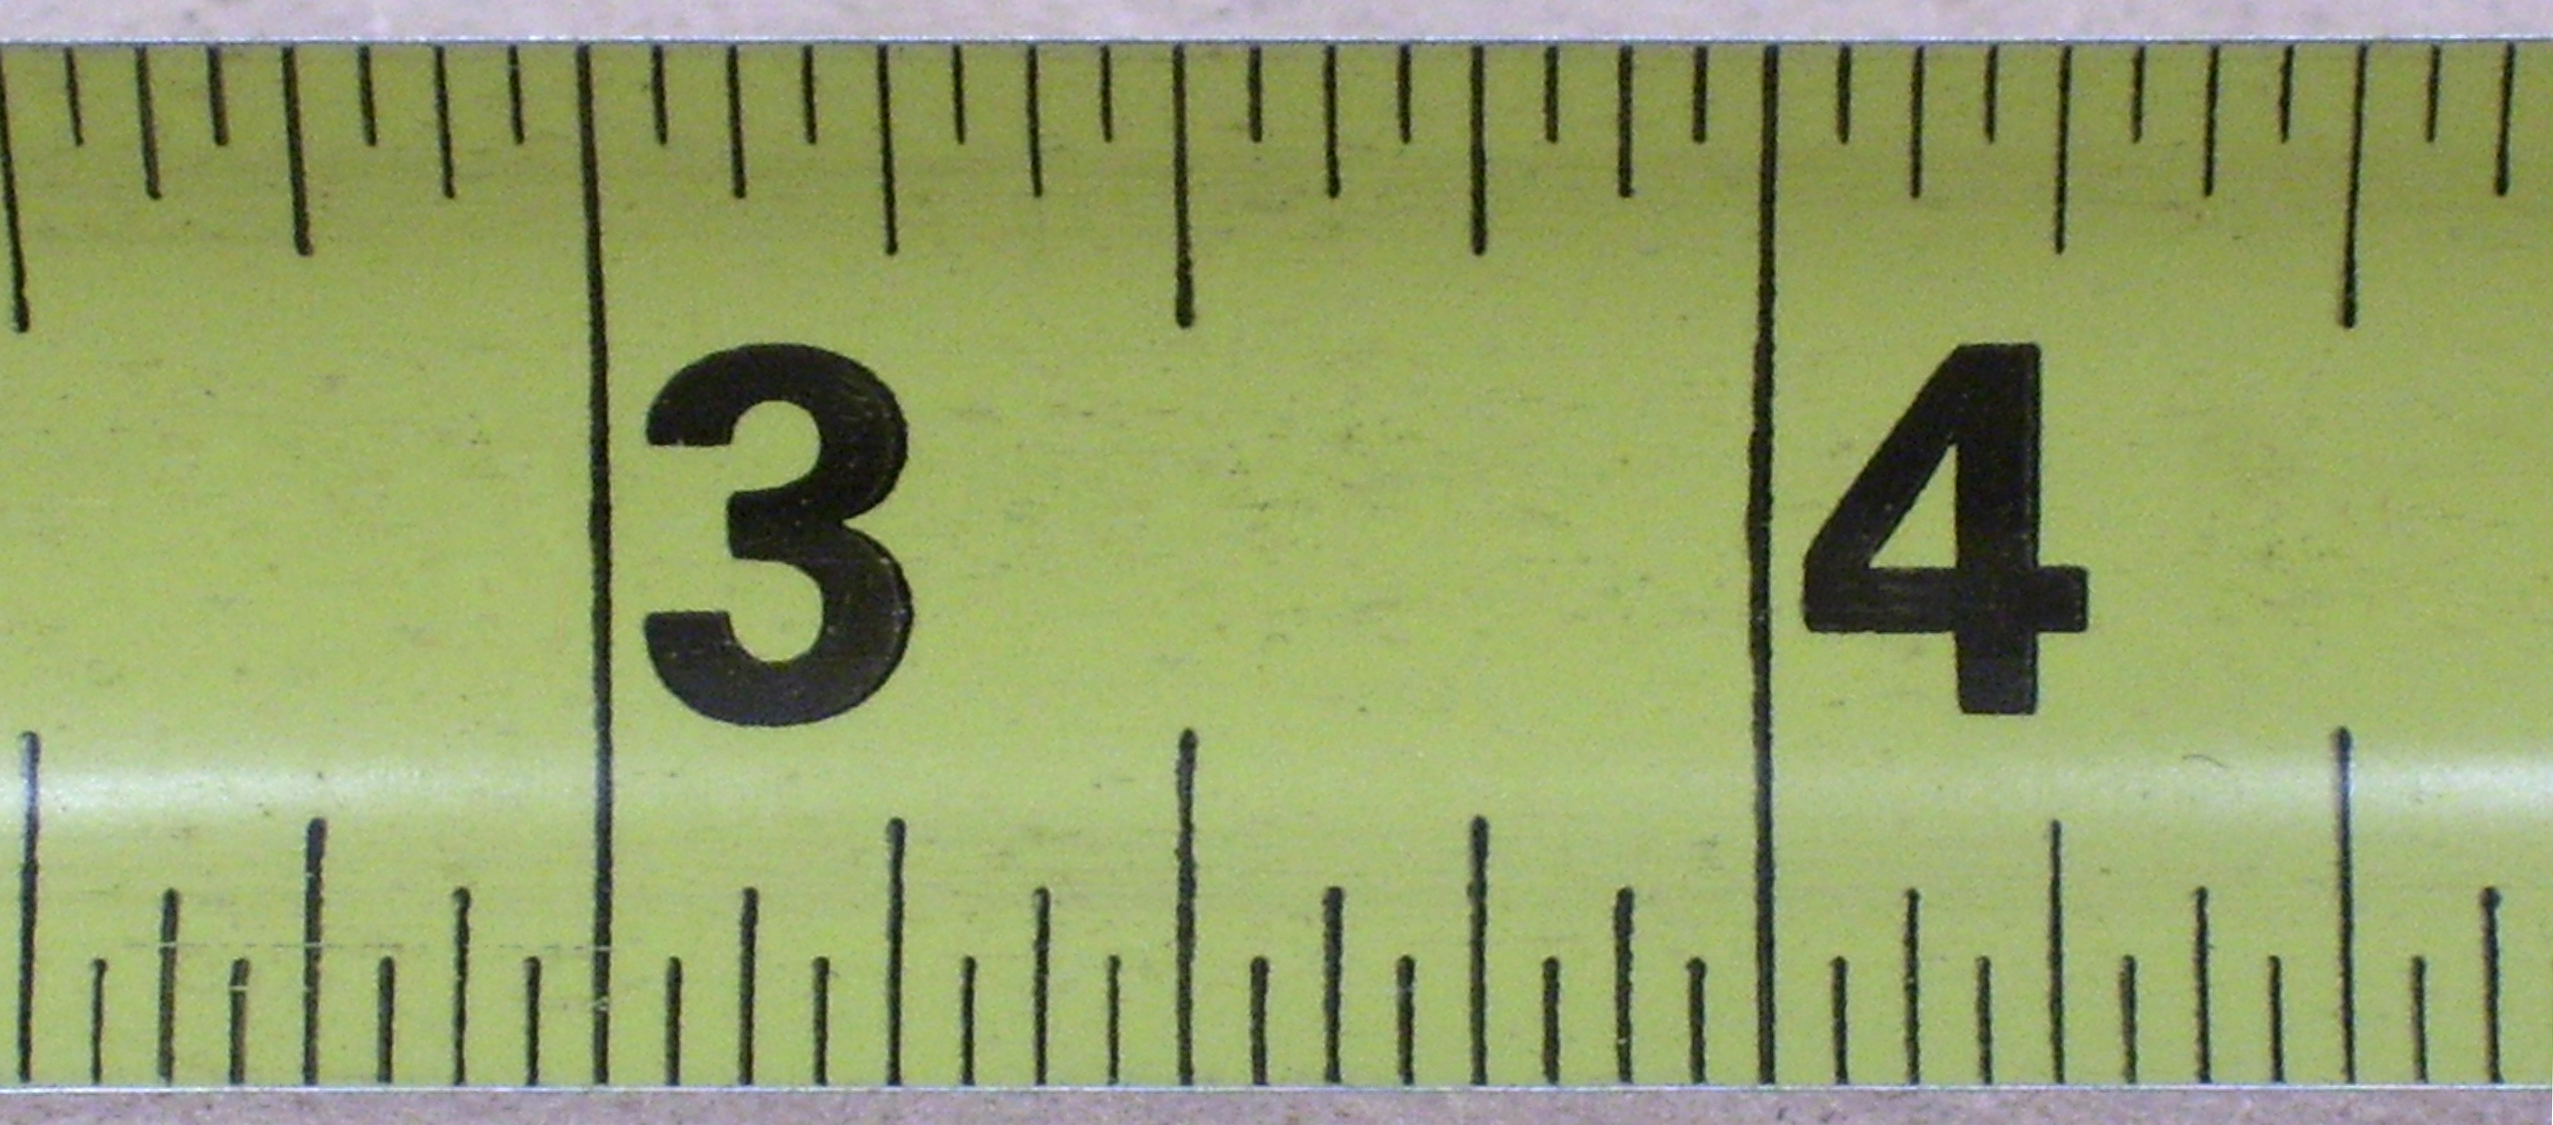 worksheet Tape Measure Fractions measuring and fractions close up of tape measure